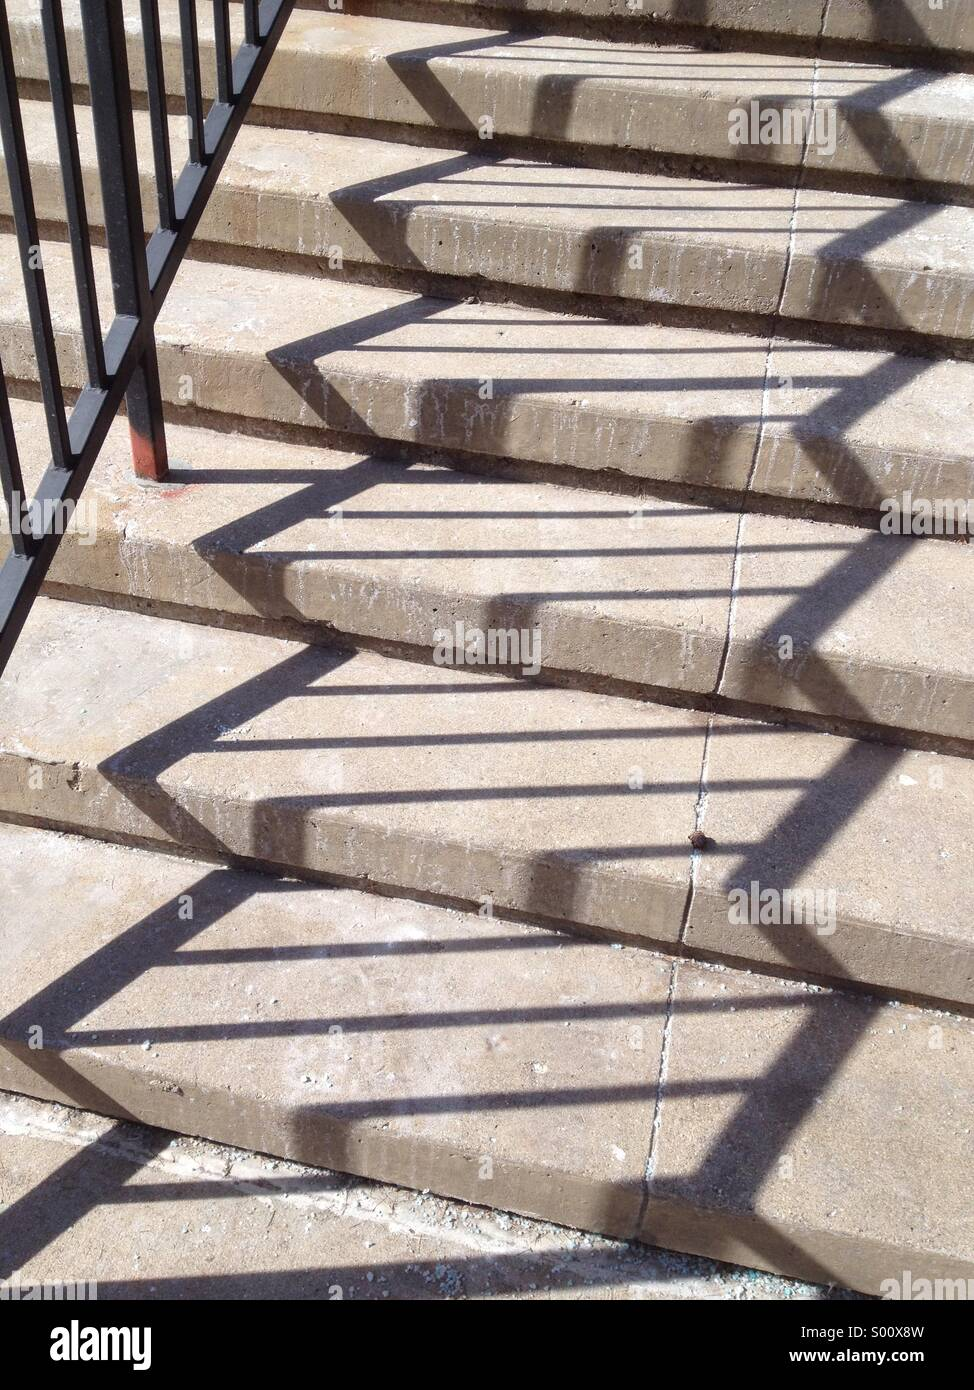 Zigzag pattern of shadows of iron railing along concrete steps on a sunny day - Stock Image